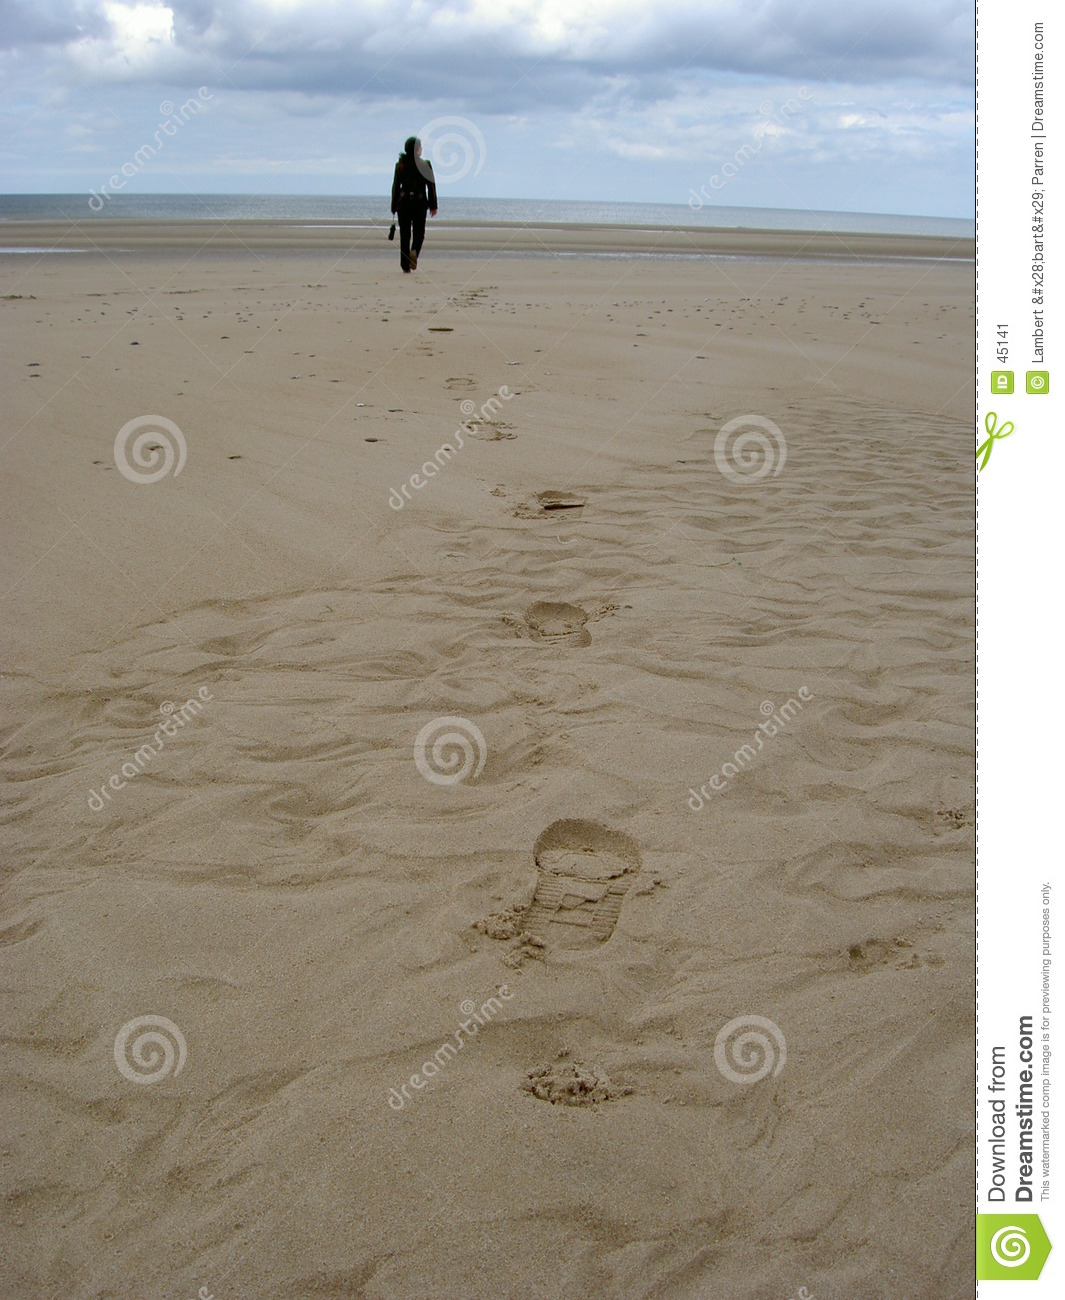 Download Footsteps stock image. Image of footsteps, abstract, steps - 45141